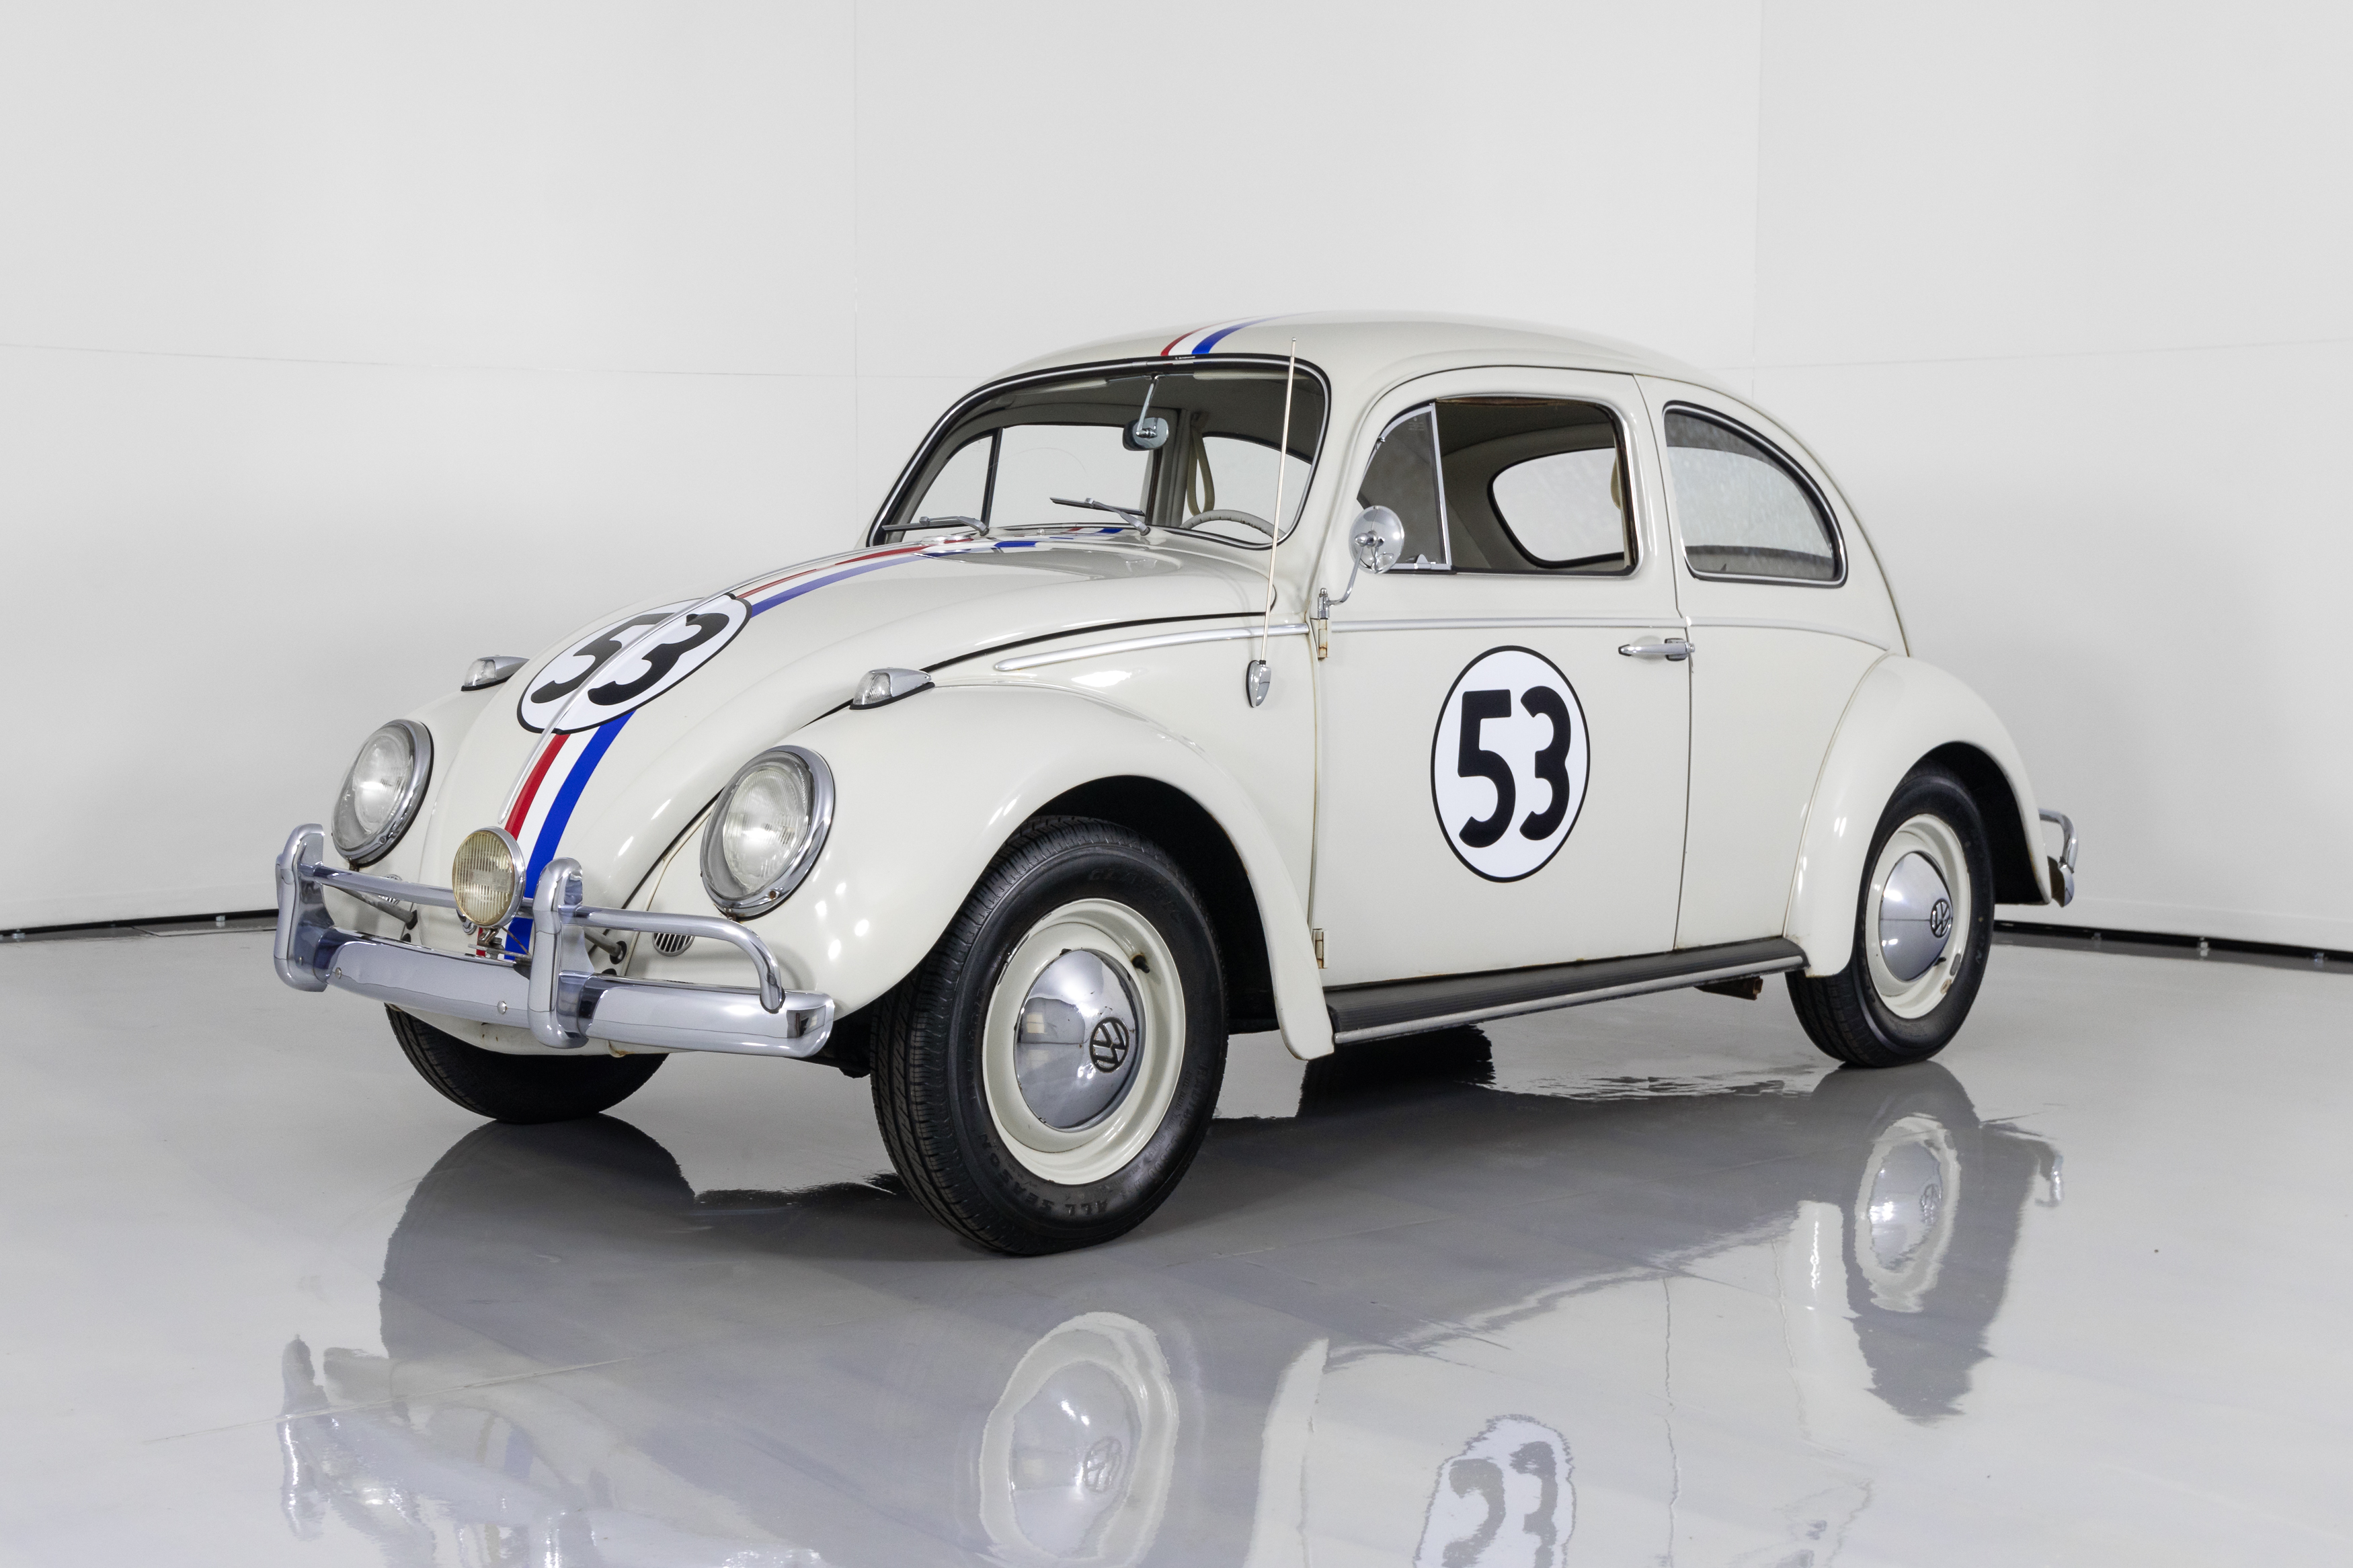 1963 VW Beetle Herbie